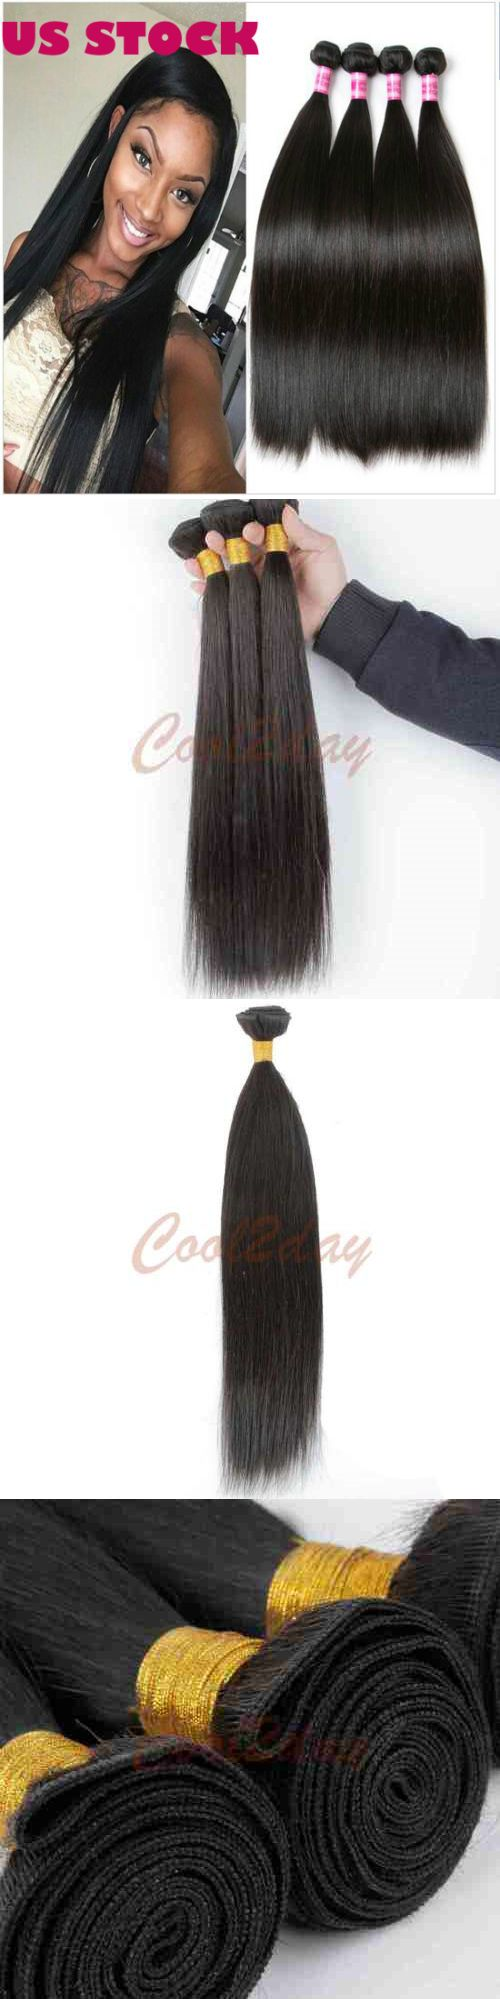 Hair Extensions: 100% Straight Virgin Remy Human Hair Brazilian Peruvian Extension Weft Us Stock -> BUY IT NOW ONLY: $44 on eBay!